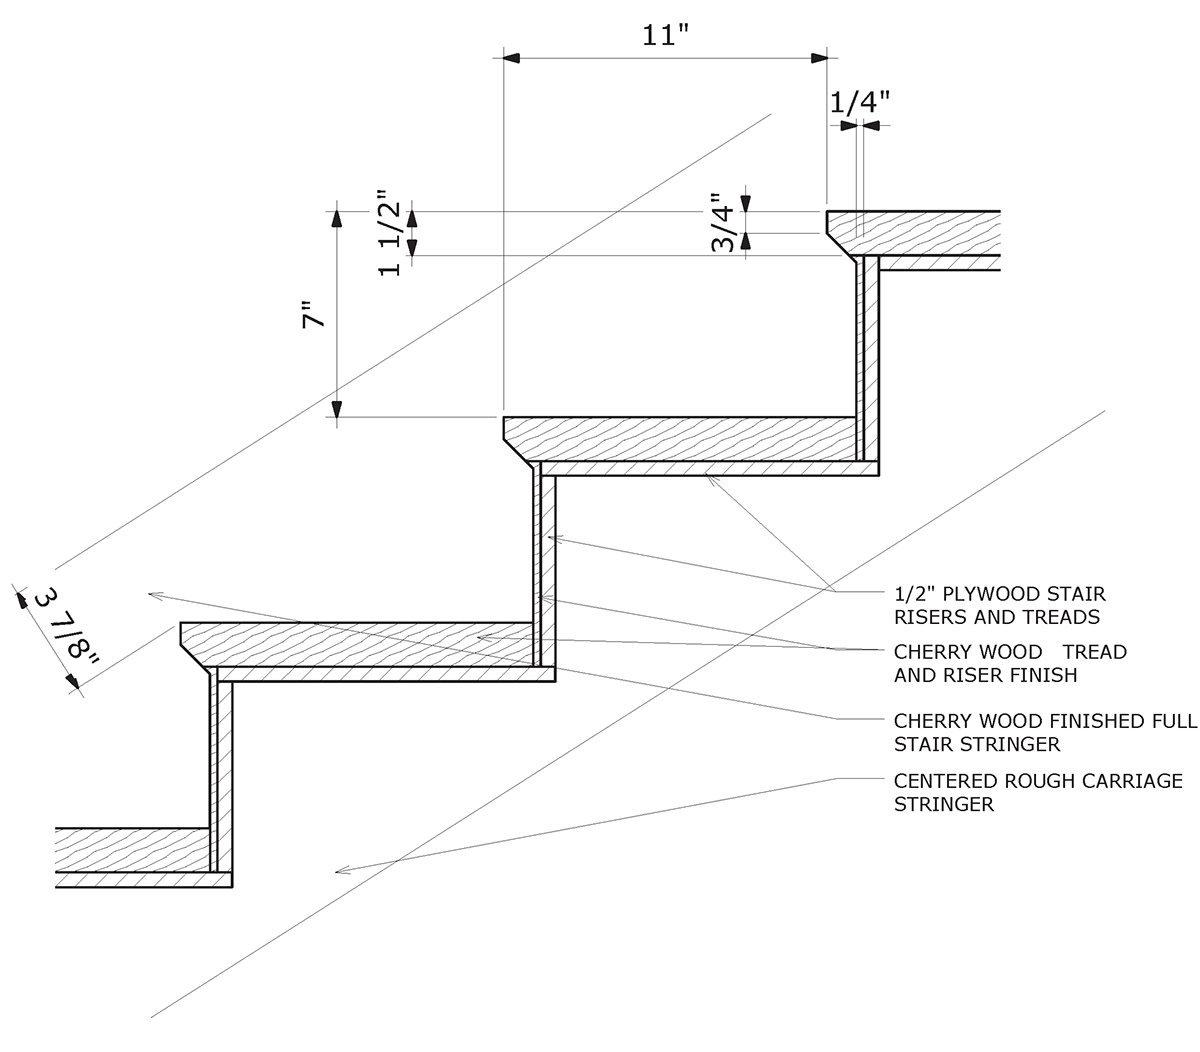 What Is The Maximum Riser Height For Stairs Leading To An